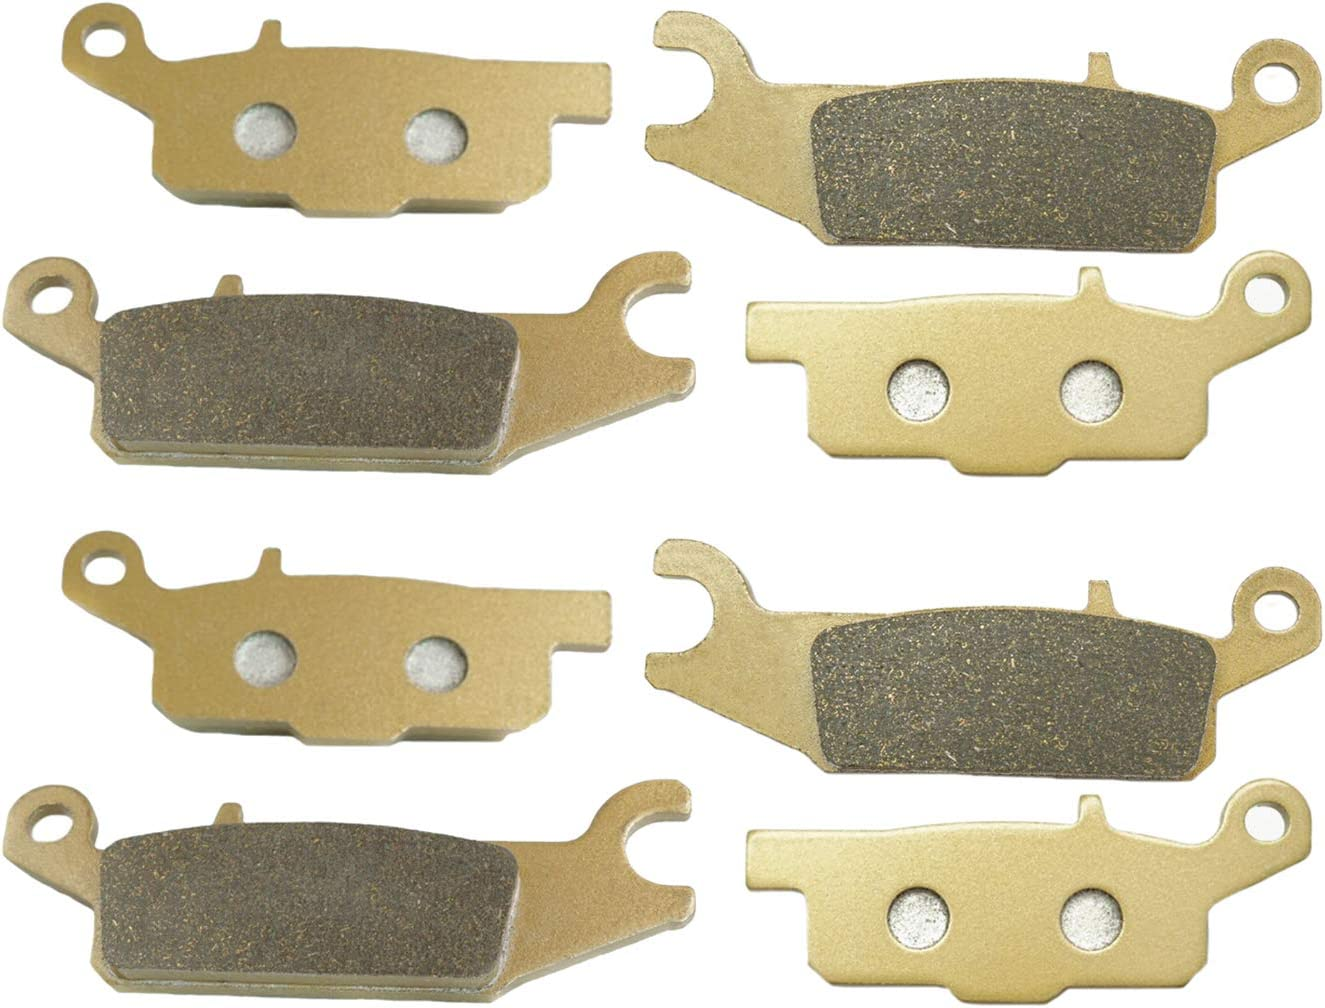 Lefossi Motorcycle Replacement Front and Rear Brake Pads for ATV Yamaha YFM700 YFM 700 Grizzly 2007 2008 2009 2010 2011 2012 2013 2014 2015 2016 2017 2018 FA443F FA444F FA445R FA446R